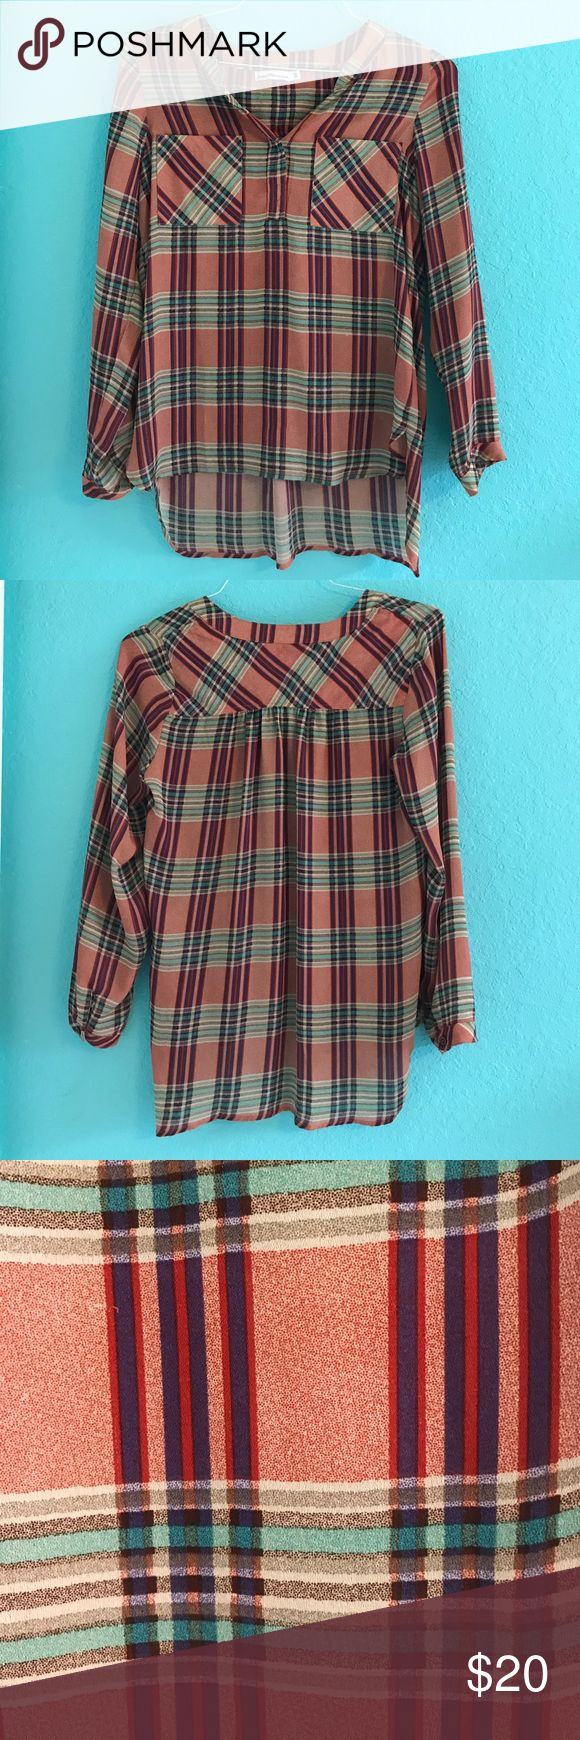 Stripe blouse Super cute and trendy striped blouse! Lightweight! Tops Blouses